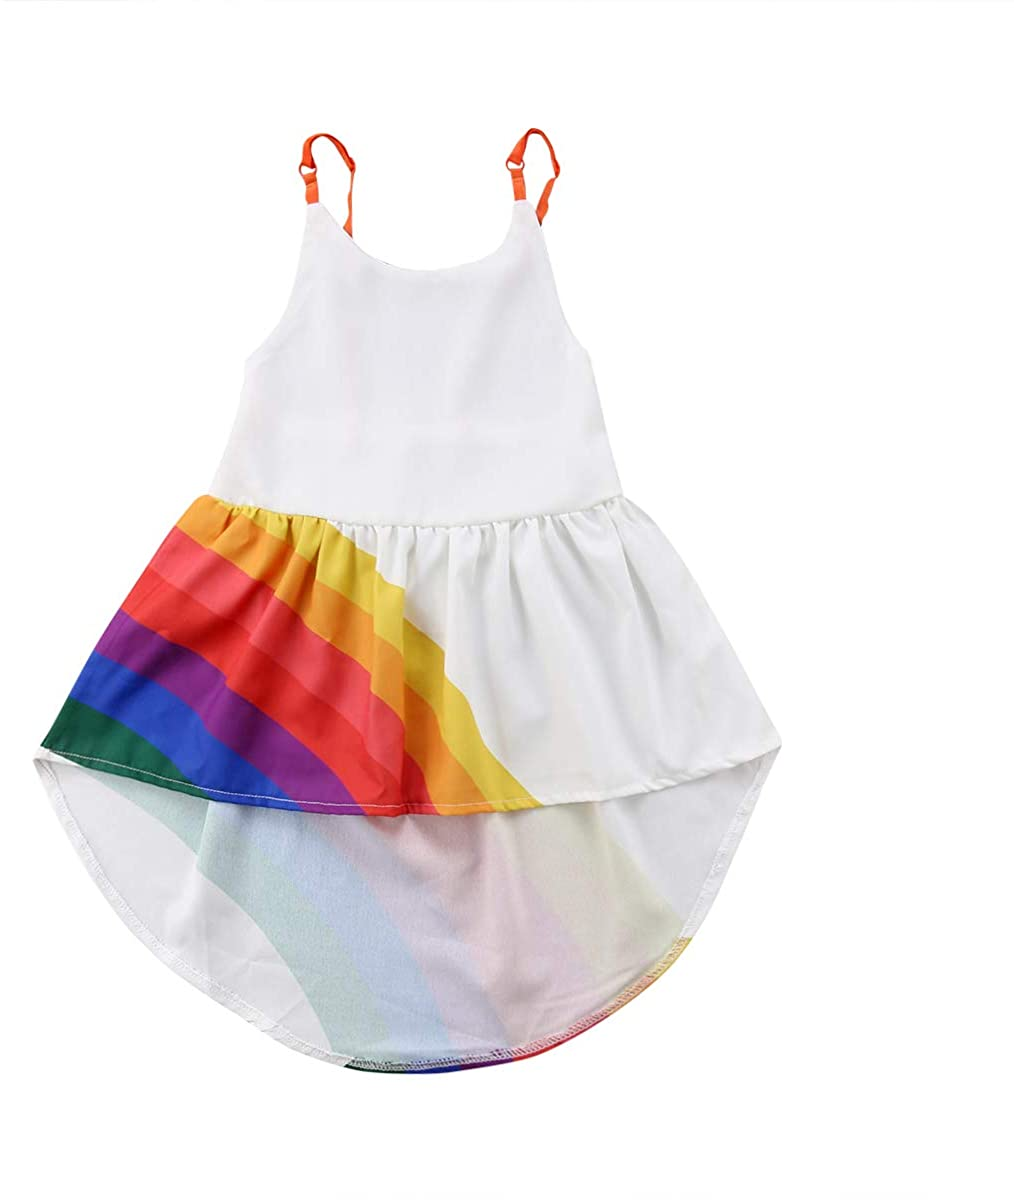 Casual Summer Toddler Kids Baby Girls Sleeveless Suspender Rainbow Beach Princess Party Sundress Dresses